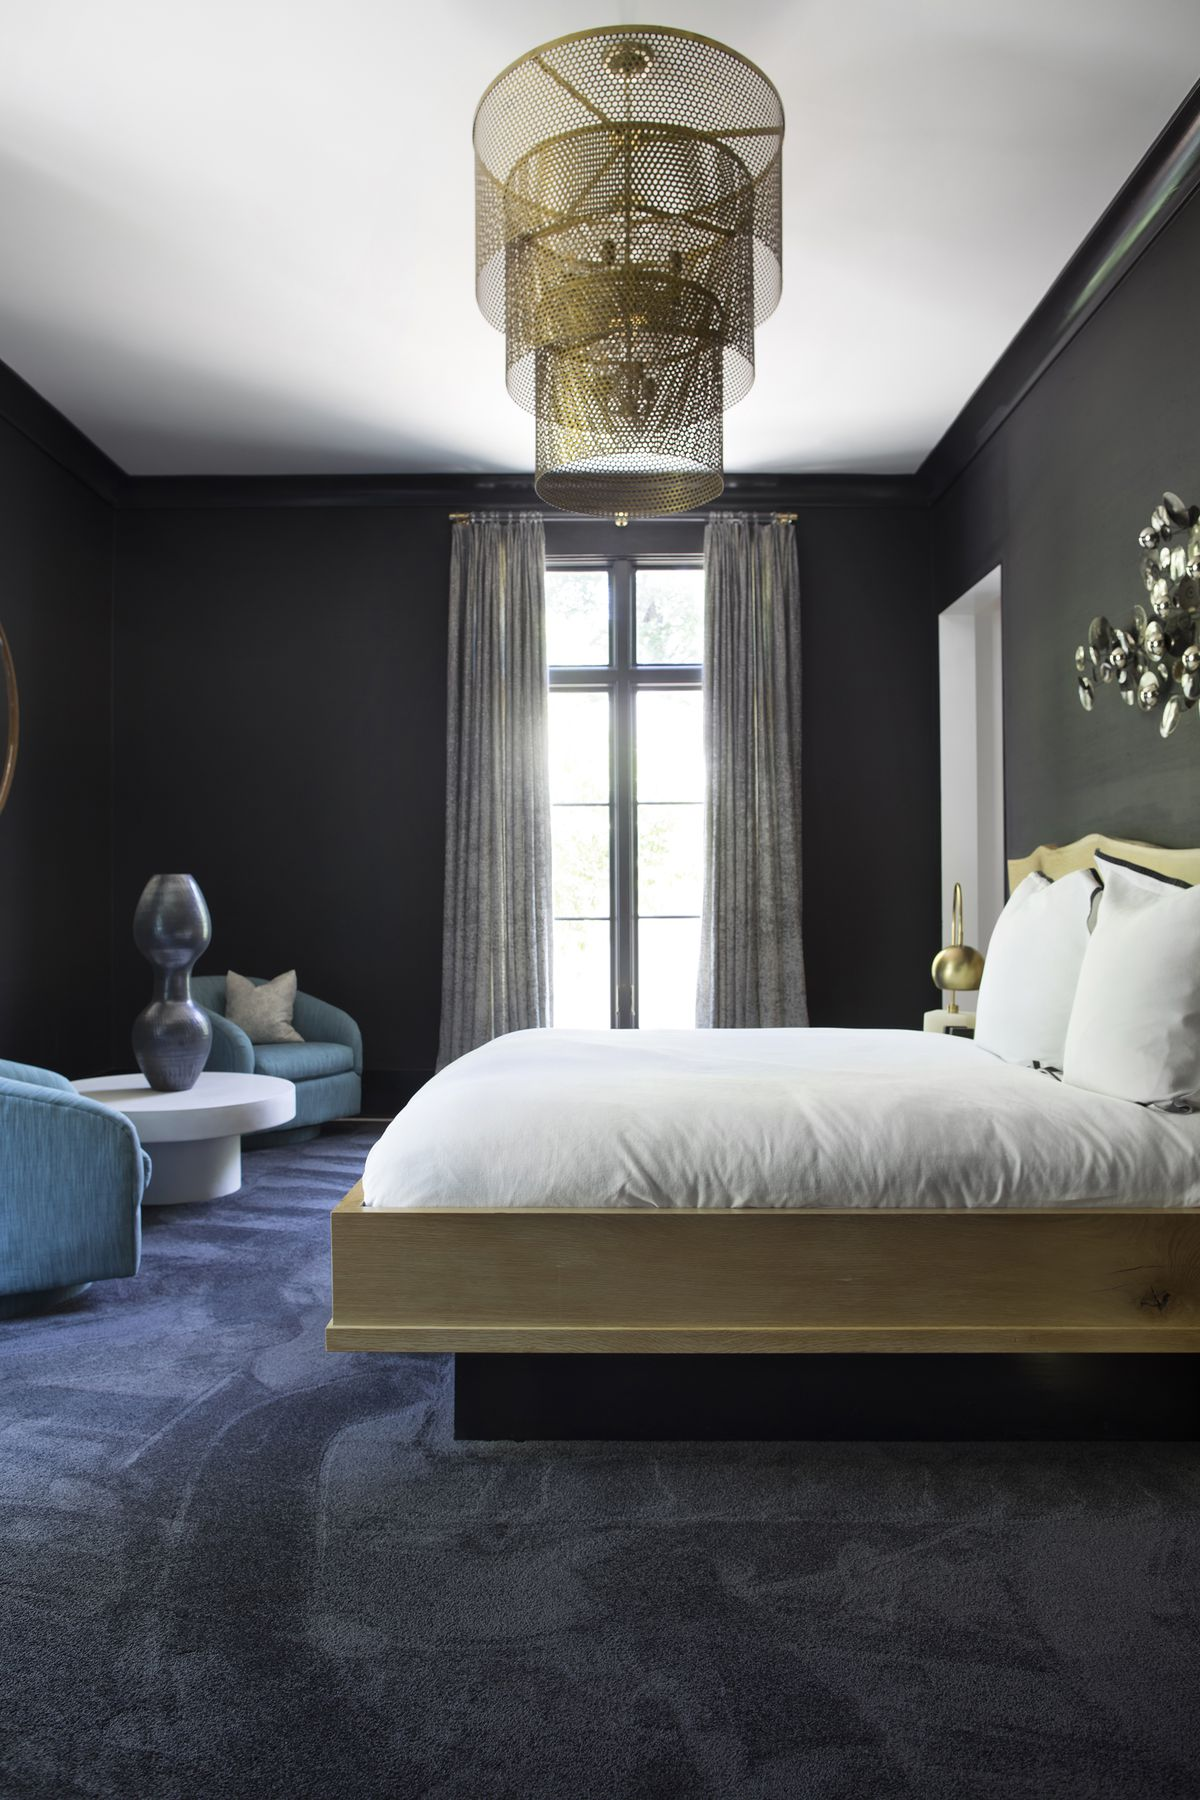 A bedroom has an oversized, tiered, brass-toned light fixture; black grasscloth walls, and a live-edge, natural wood bed.